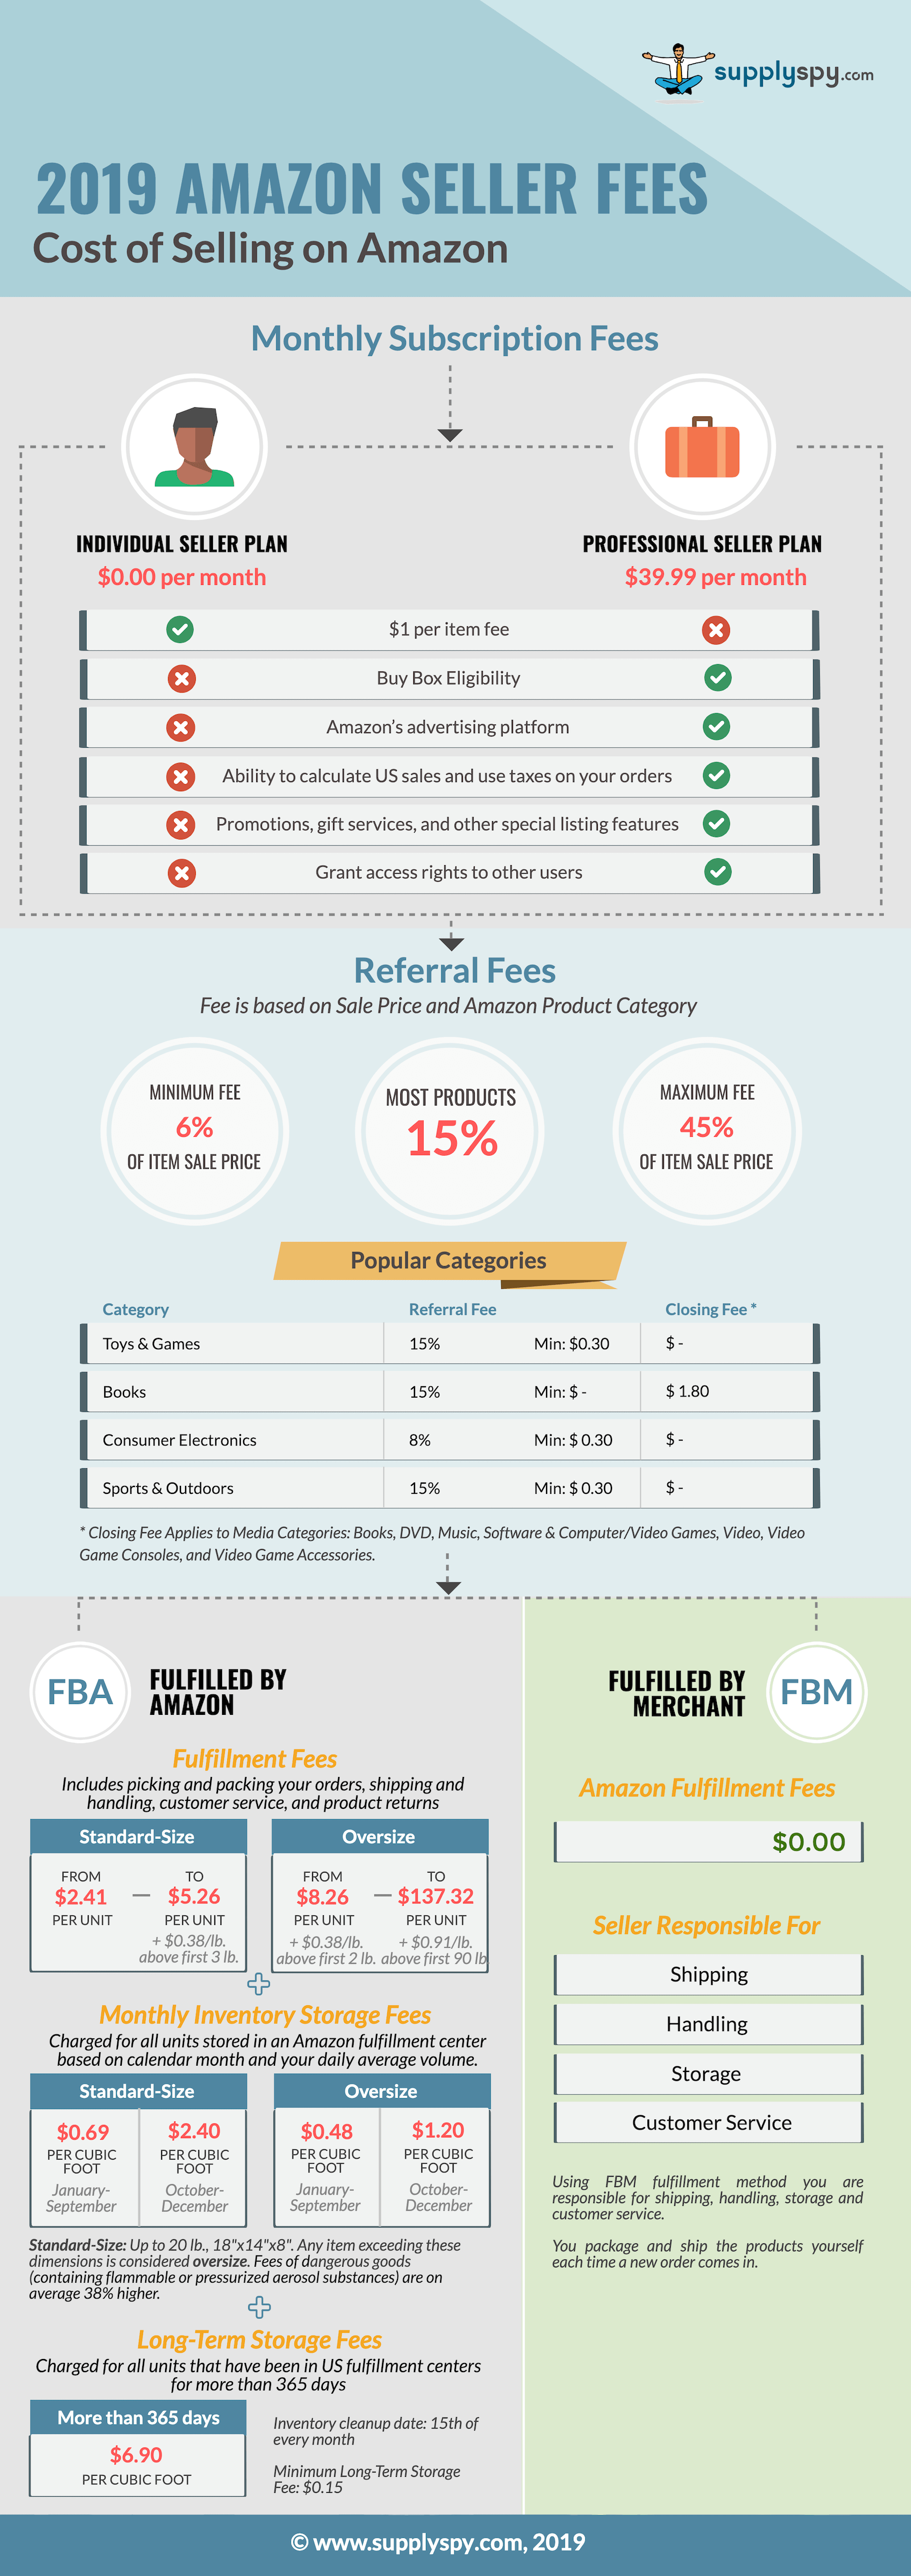 amazon-seller-fees-2019-infographic-plaza